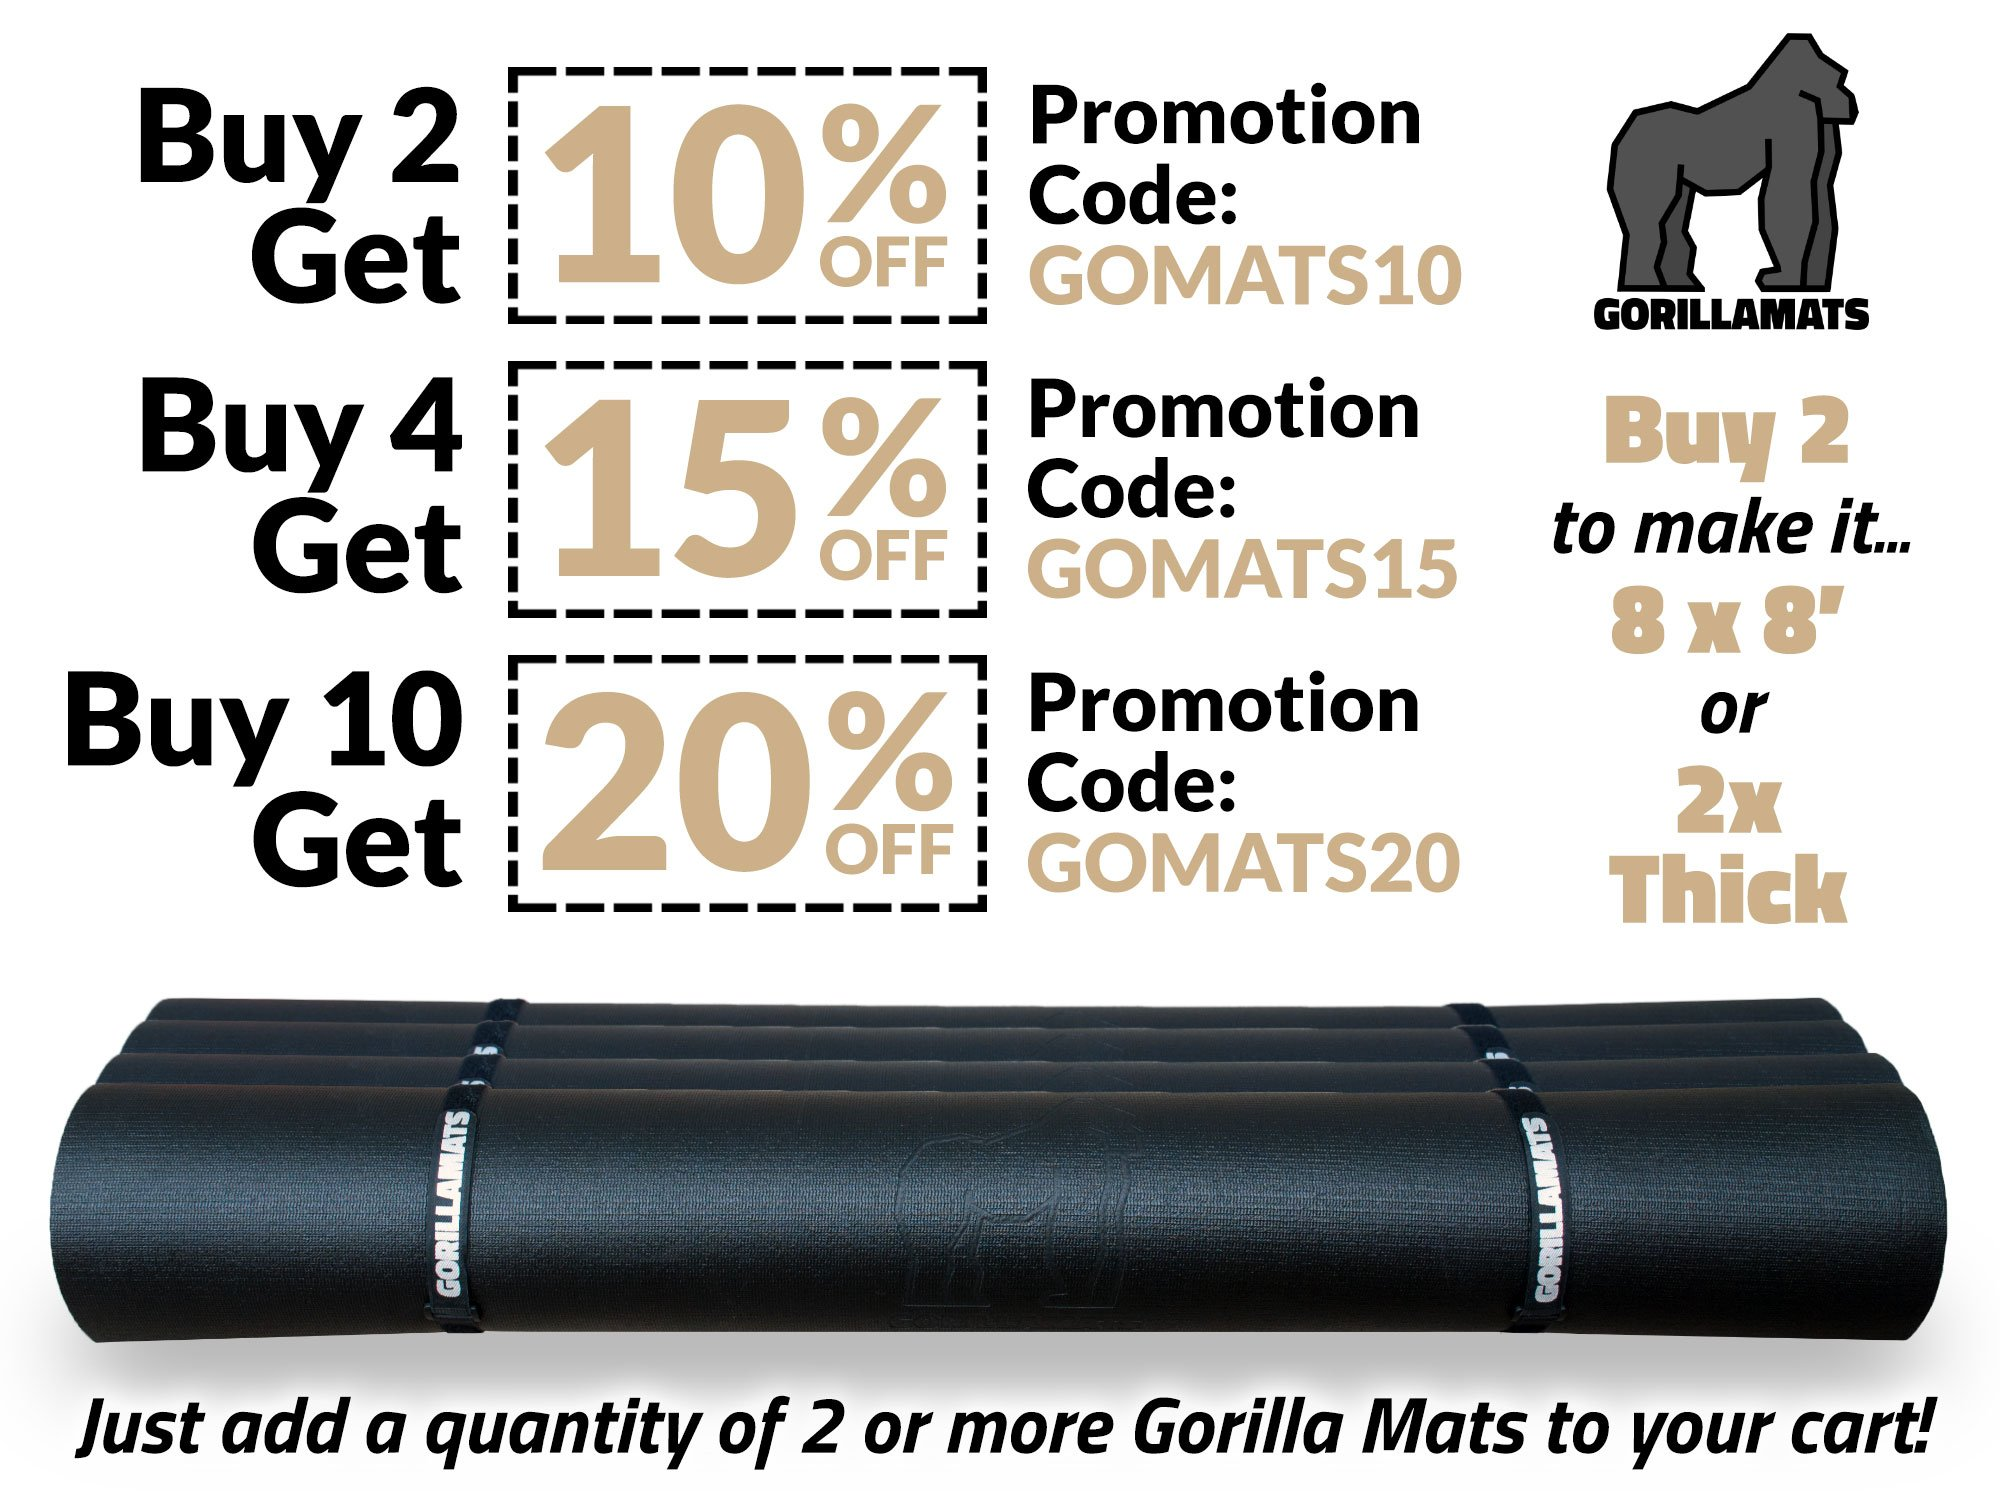 Premium Extra Large Exercise Mat - 8' x 4' x 1/4'' Ultra Durable, Non-Slip, Workout Mats for Home Gym Flooring - Jump, Cardio, MMA Mat - Use with or Without Shoes (96'' Long x 48'' Wide x 6mm Thick) by Gorilla Mats (Image #7)